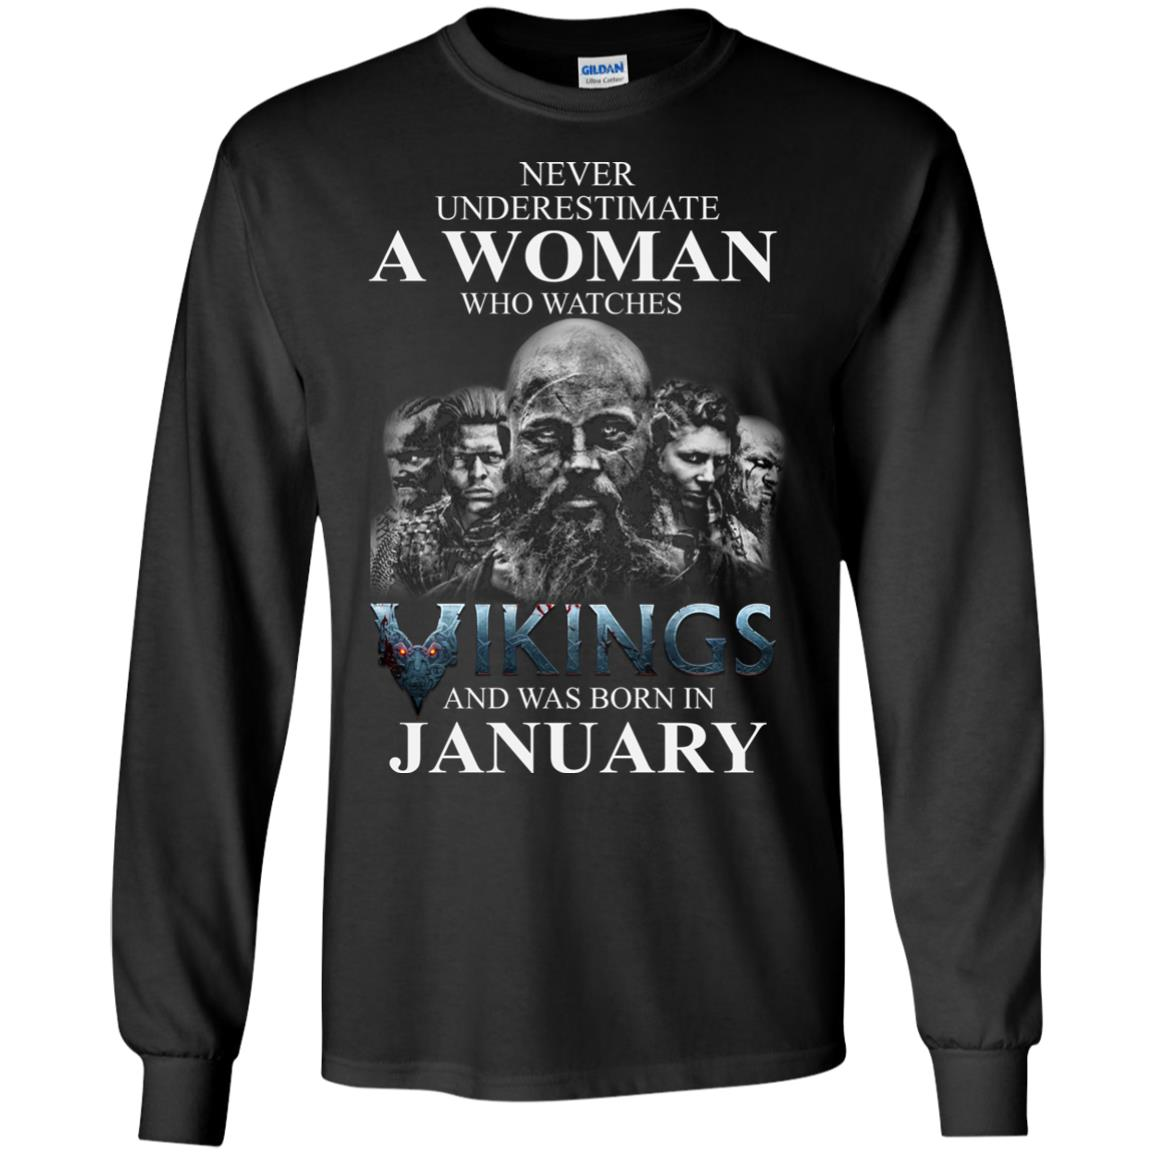 image 1353 - Never Underestimate A woman who watches Vikings and was born in January shirt